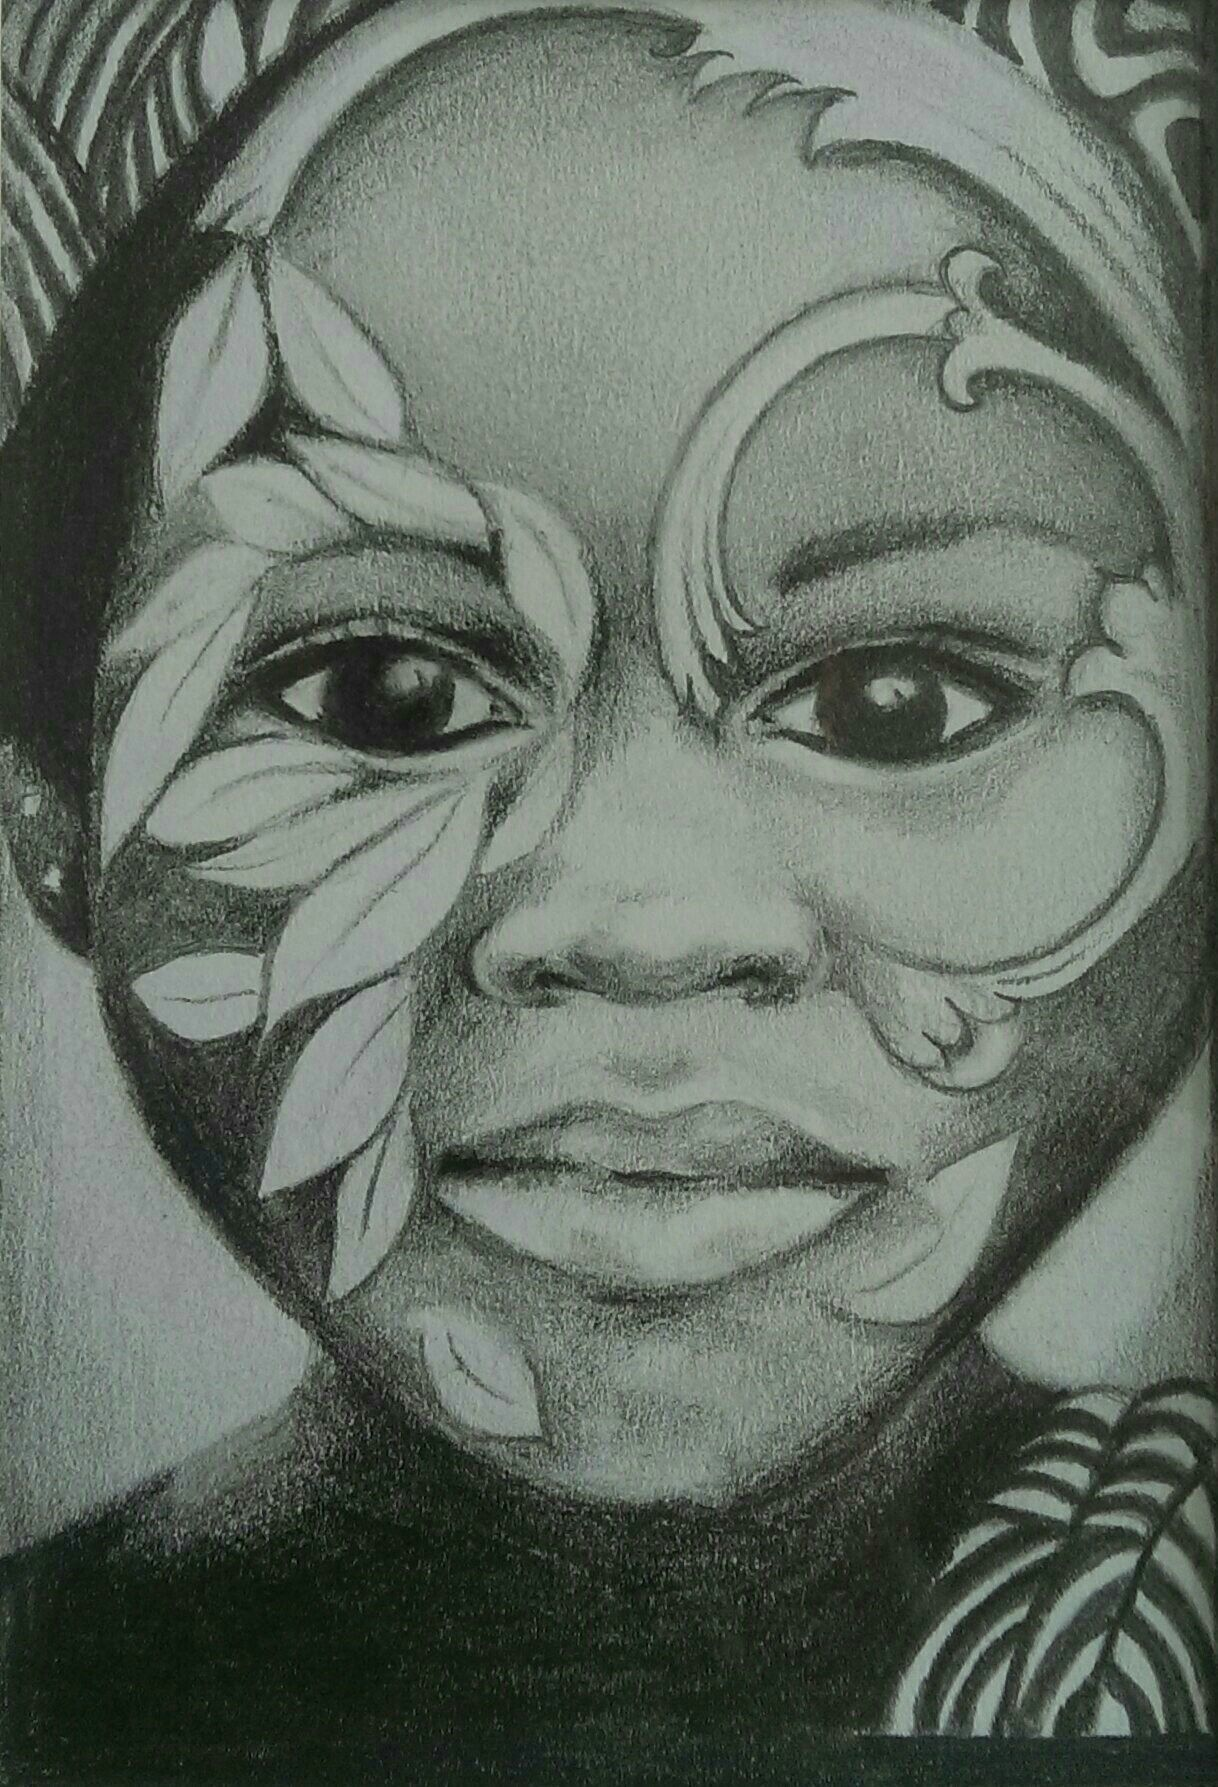 Festival graphite pencil drawing